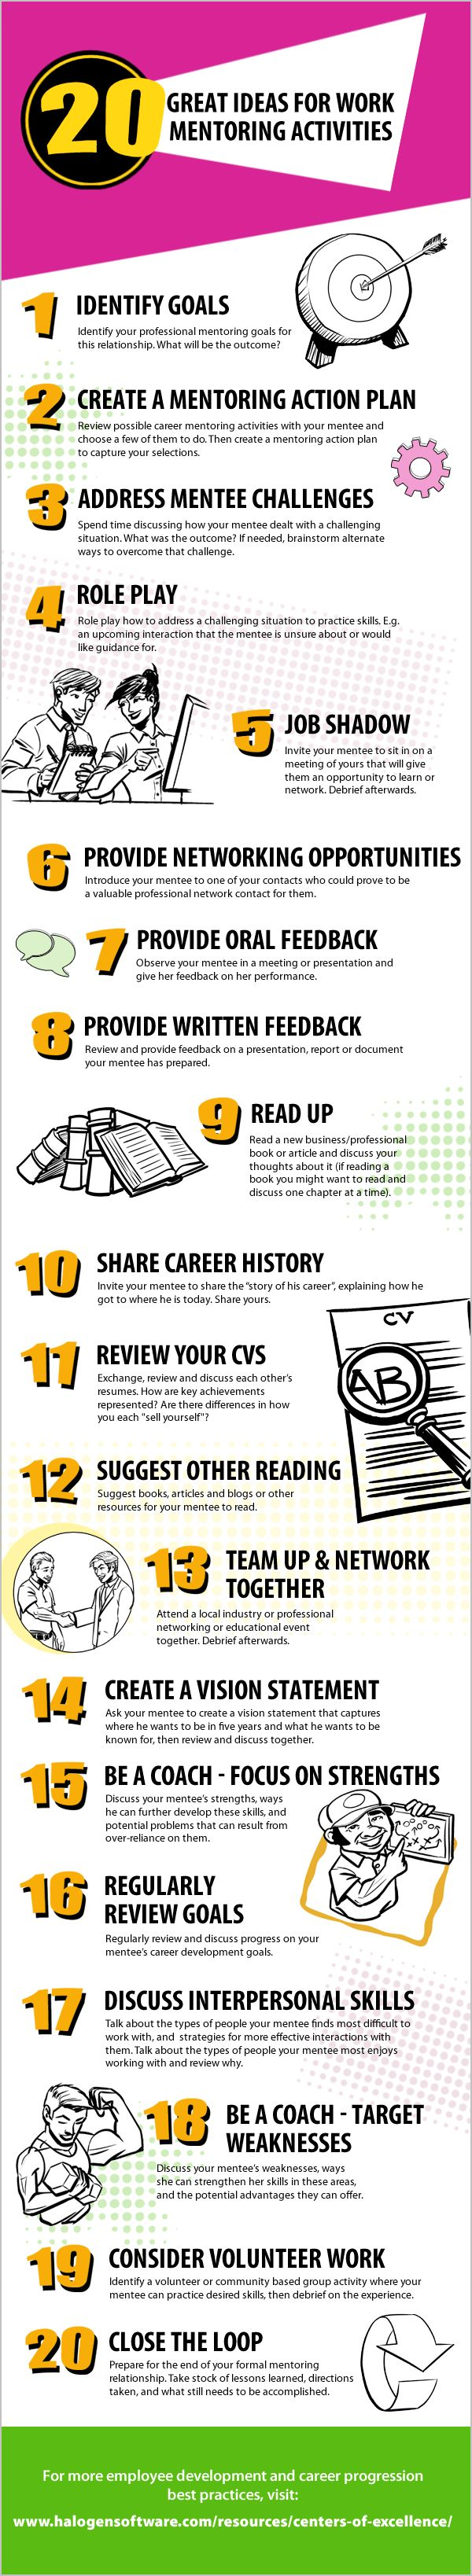 best ideas about career development job a list of training and mentoring activities to help mentees achieve learning and career development goals